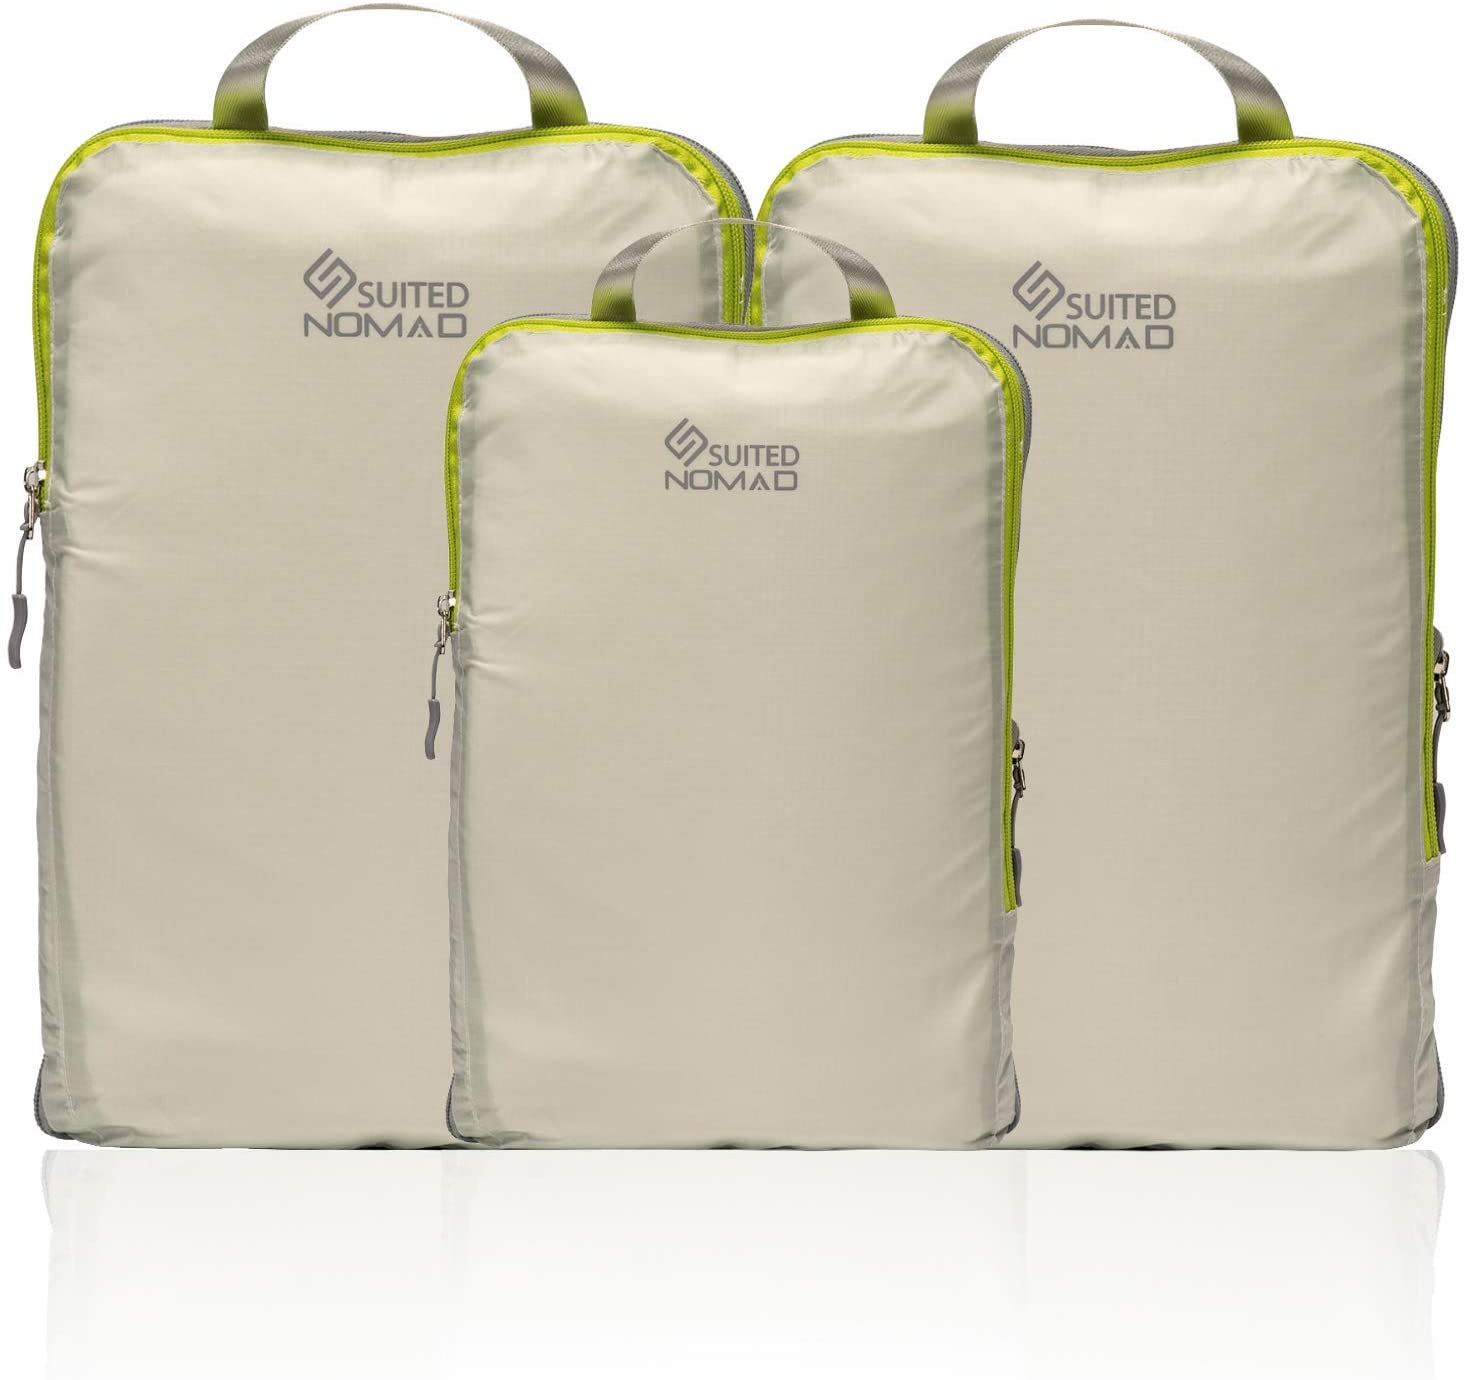 SUITEDNOMAD Compression Packing Cubes Set